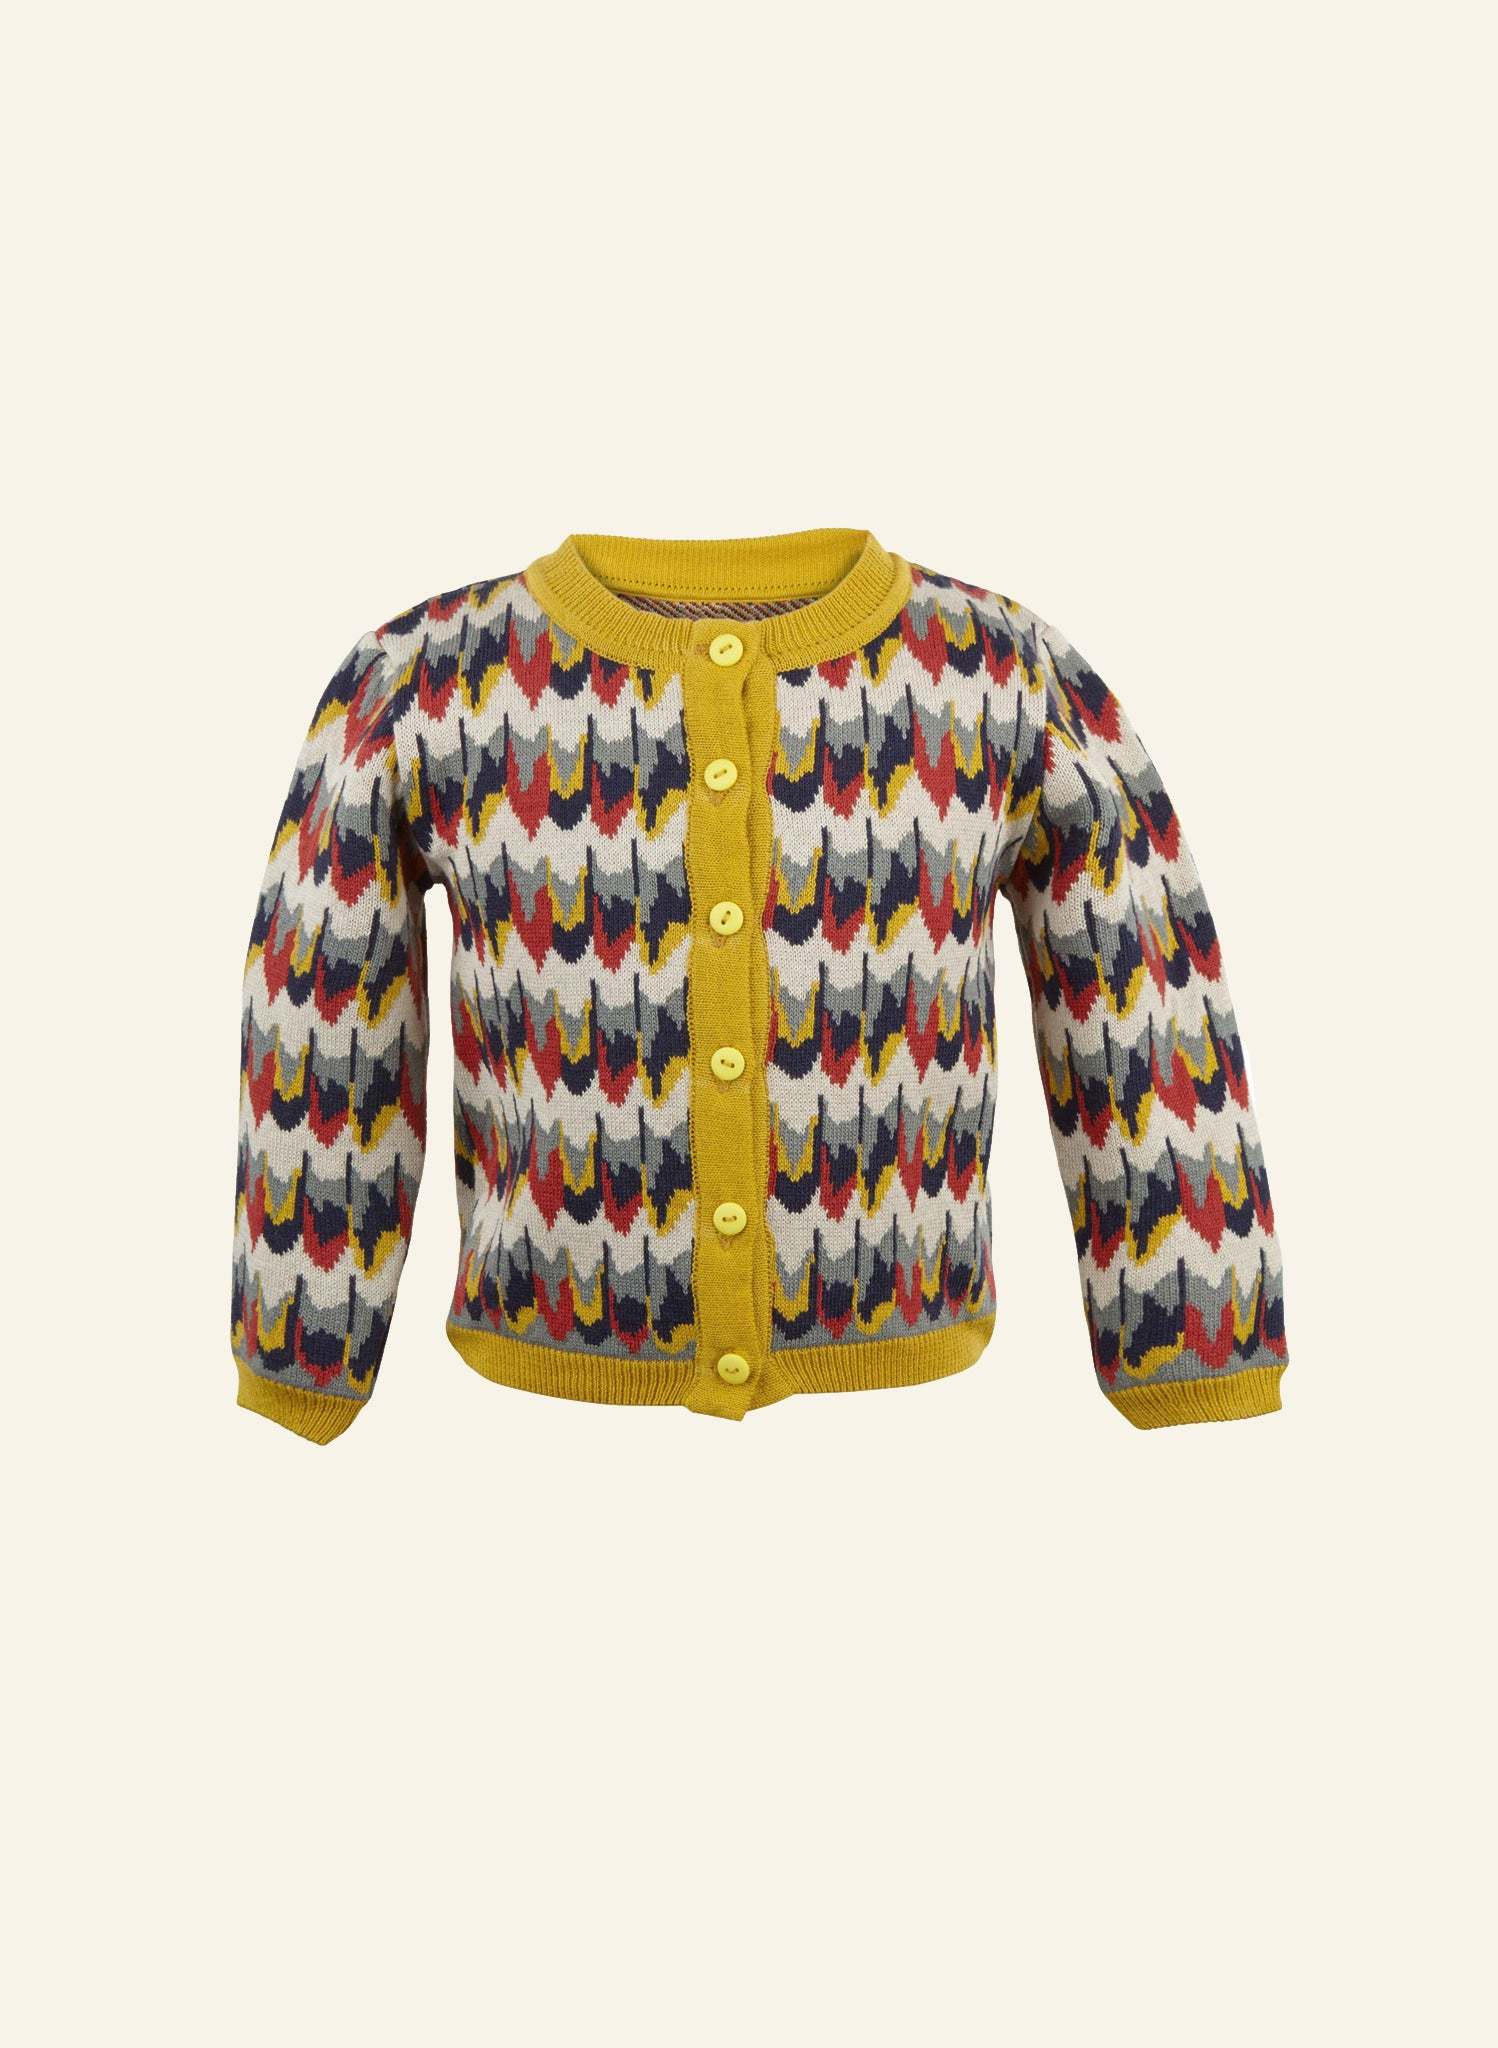 Children's Cardigan - Marbled Feathers